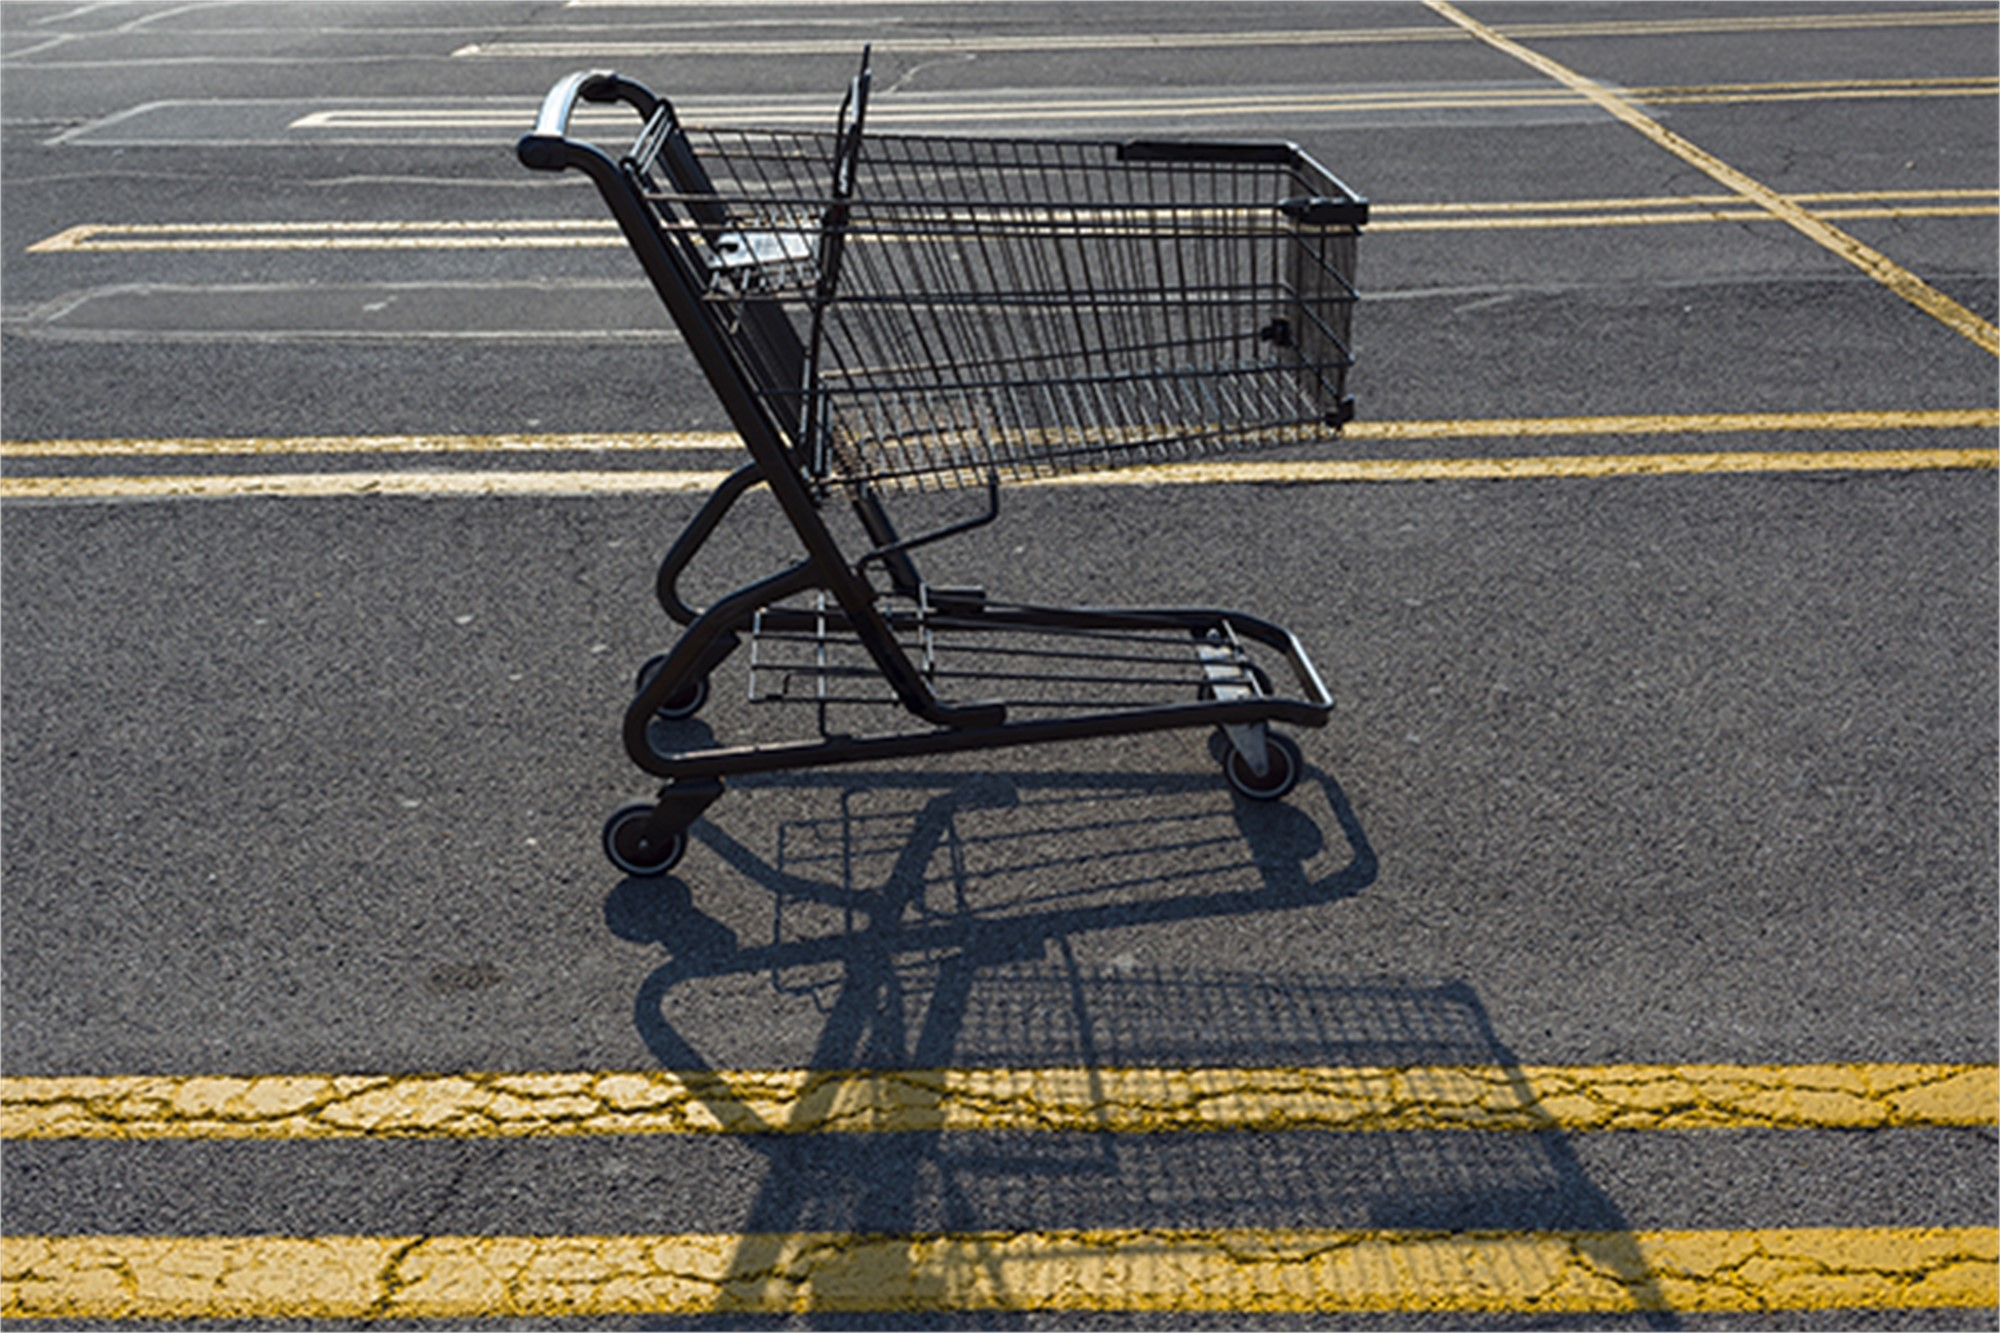 Grocery Cart by Frank Sherwood White